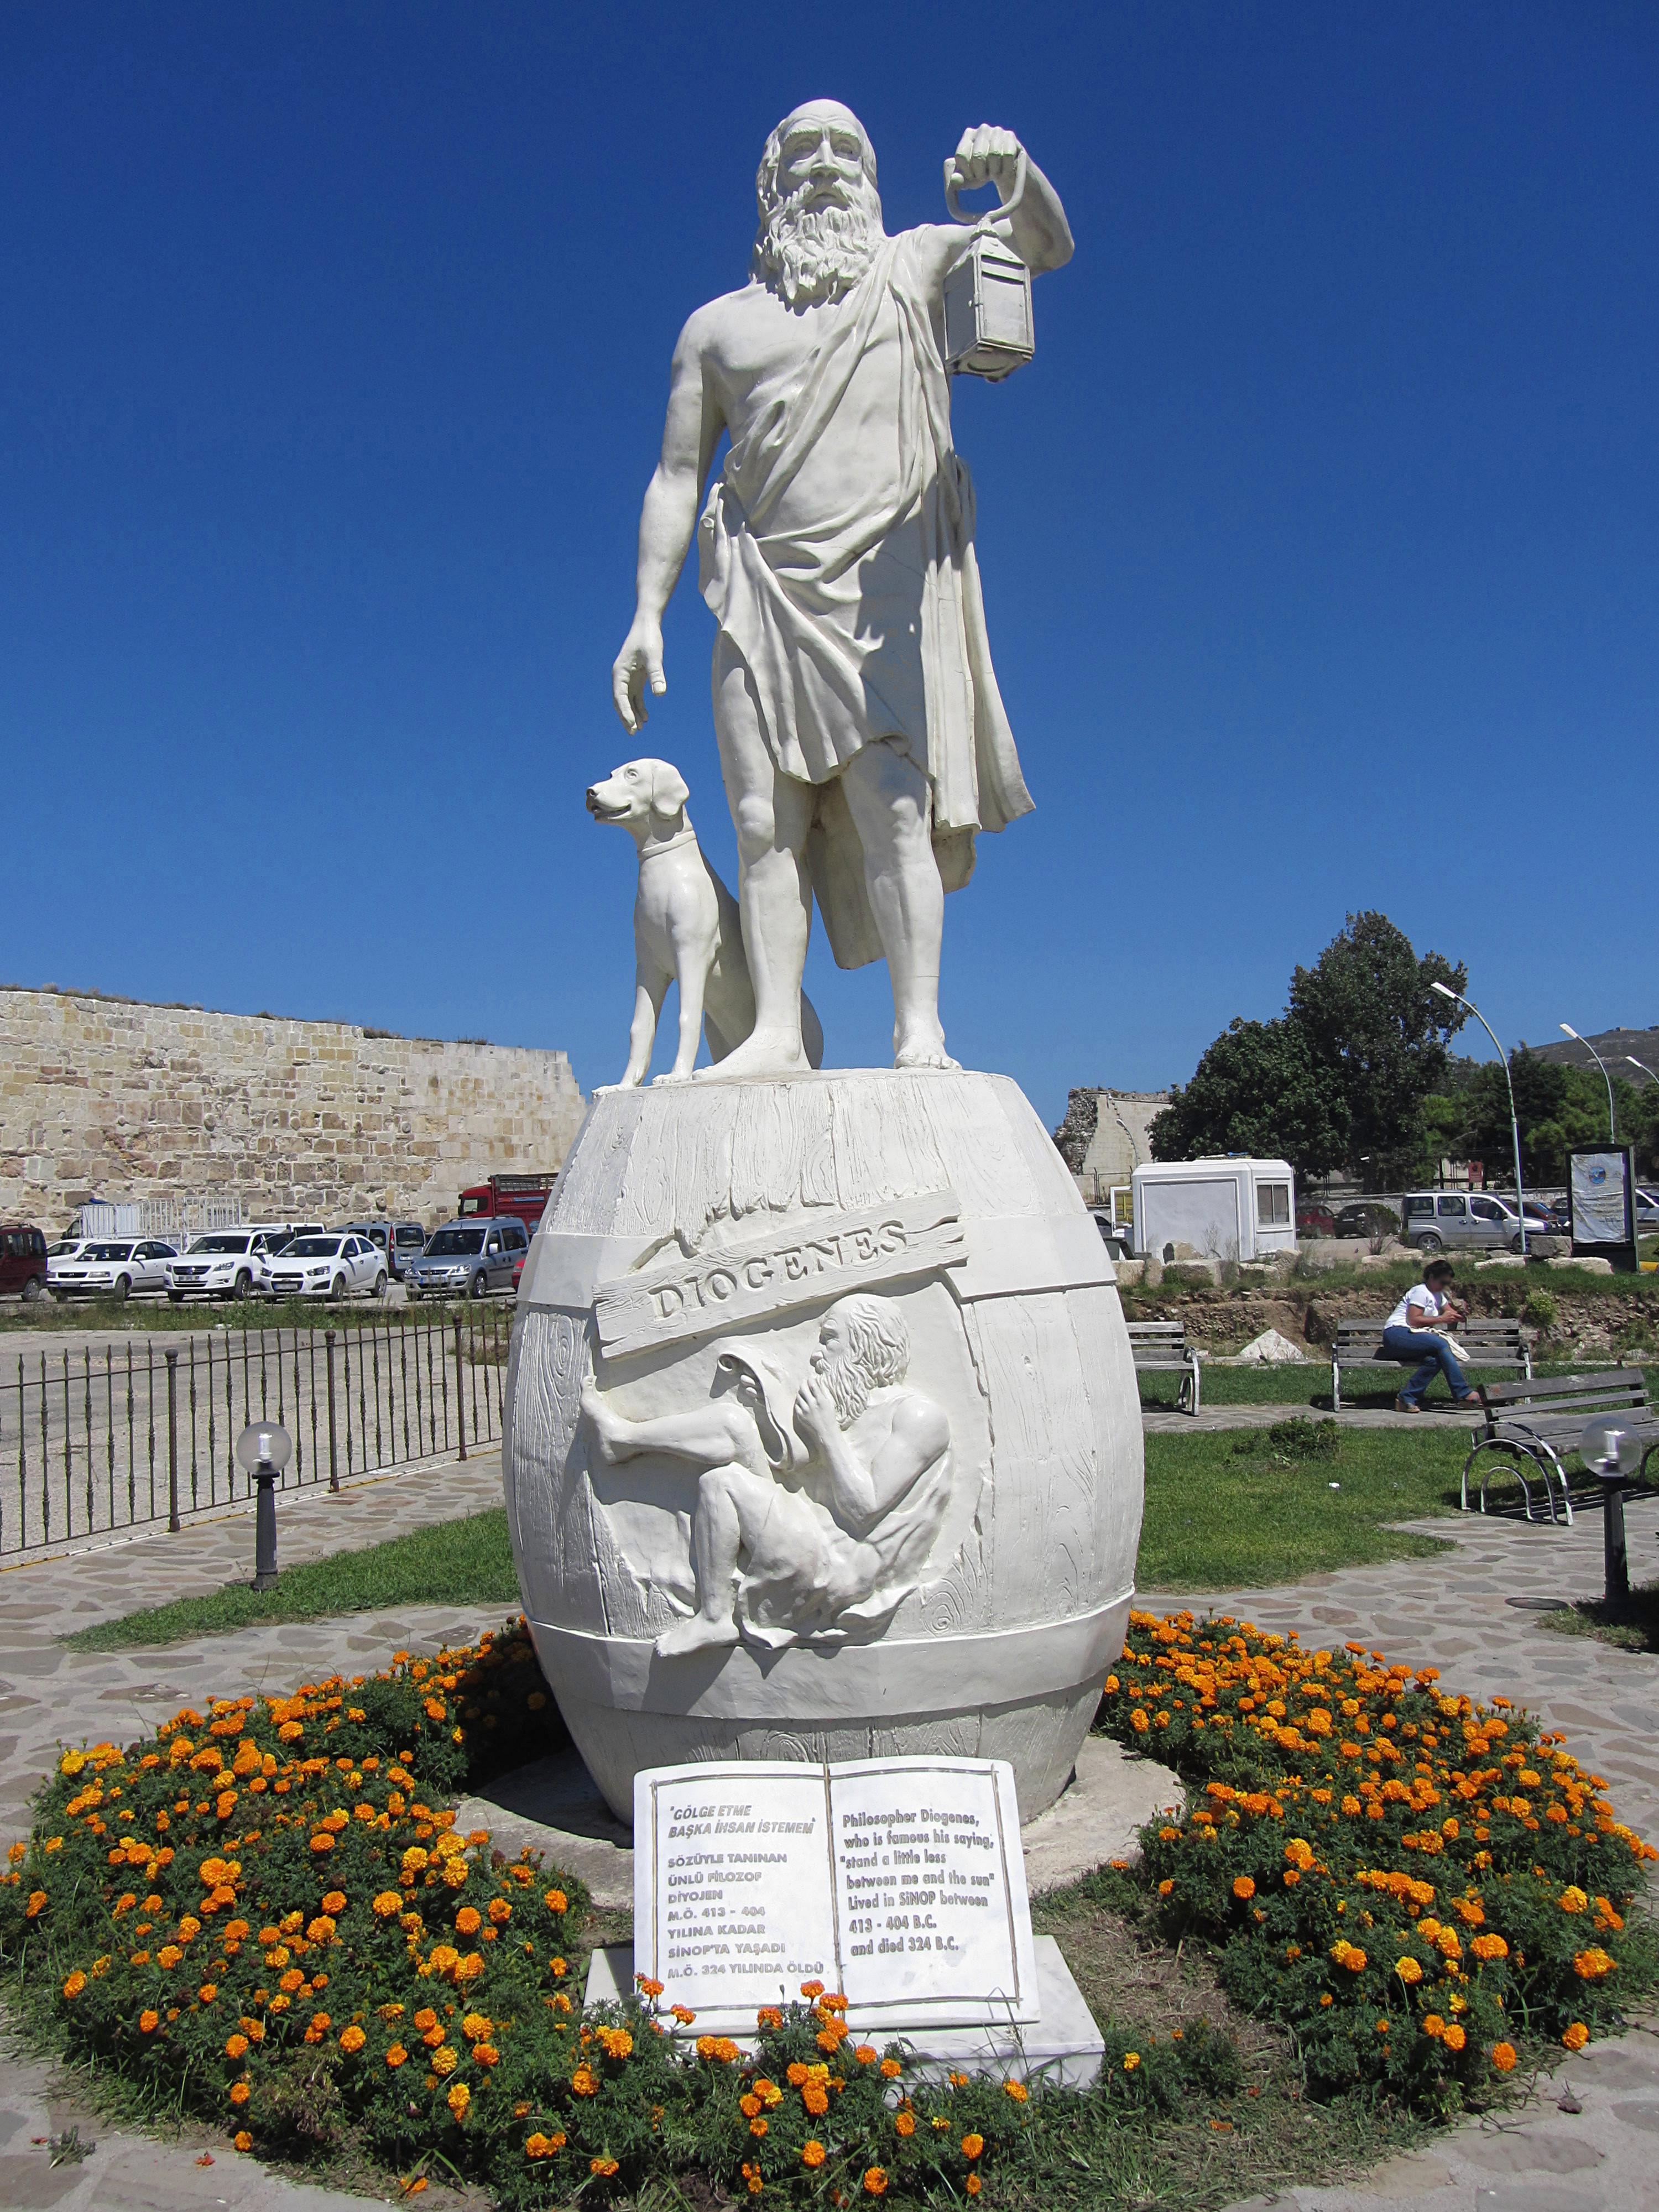 Diogenes_statue_in_Sinop-full